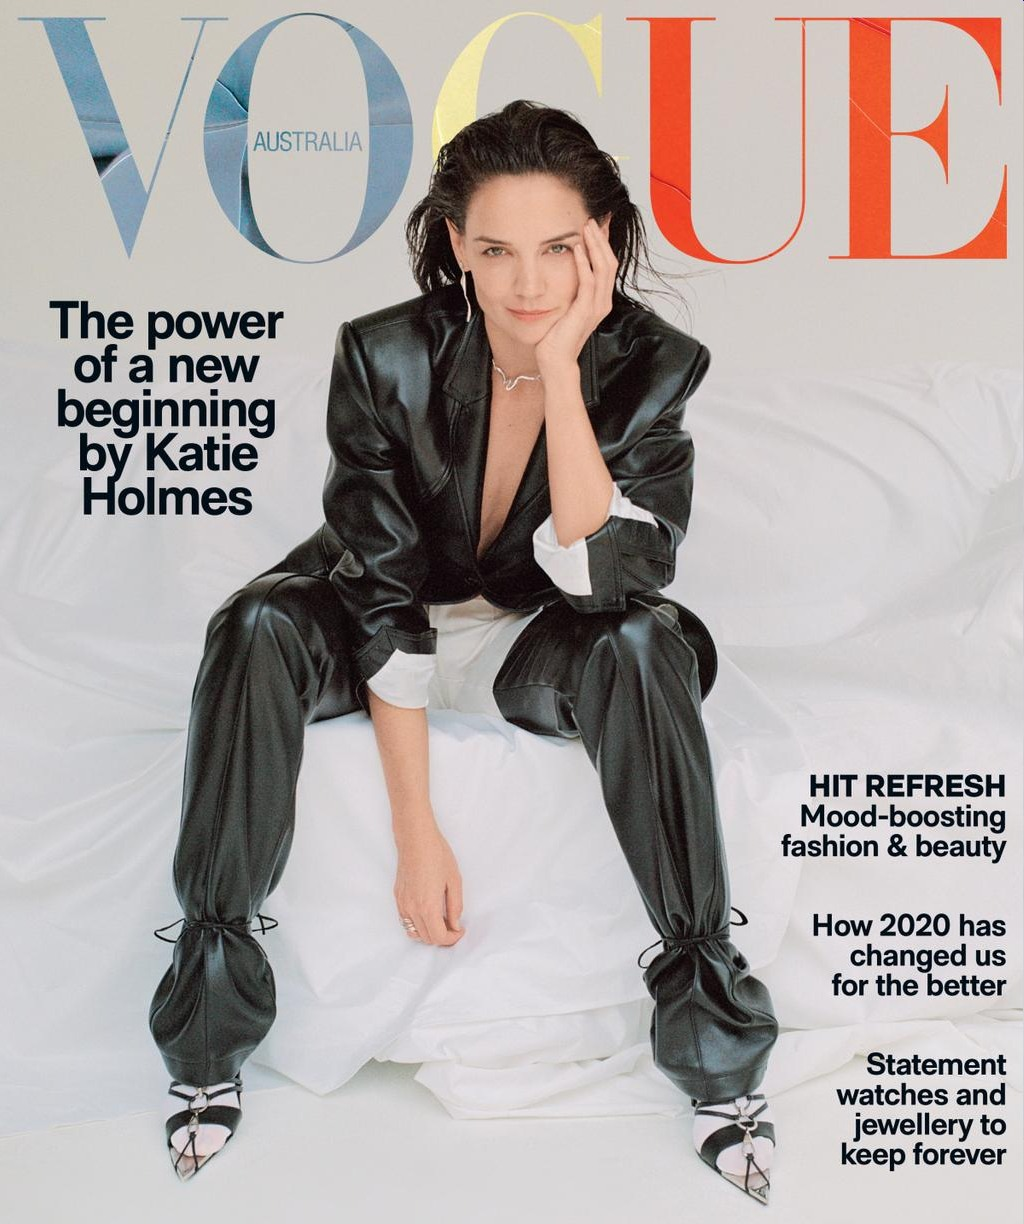 katie vogue